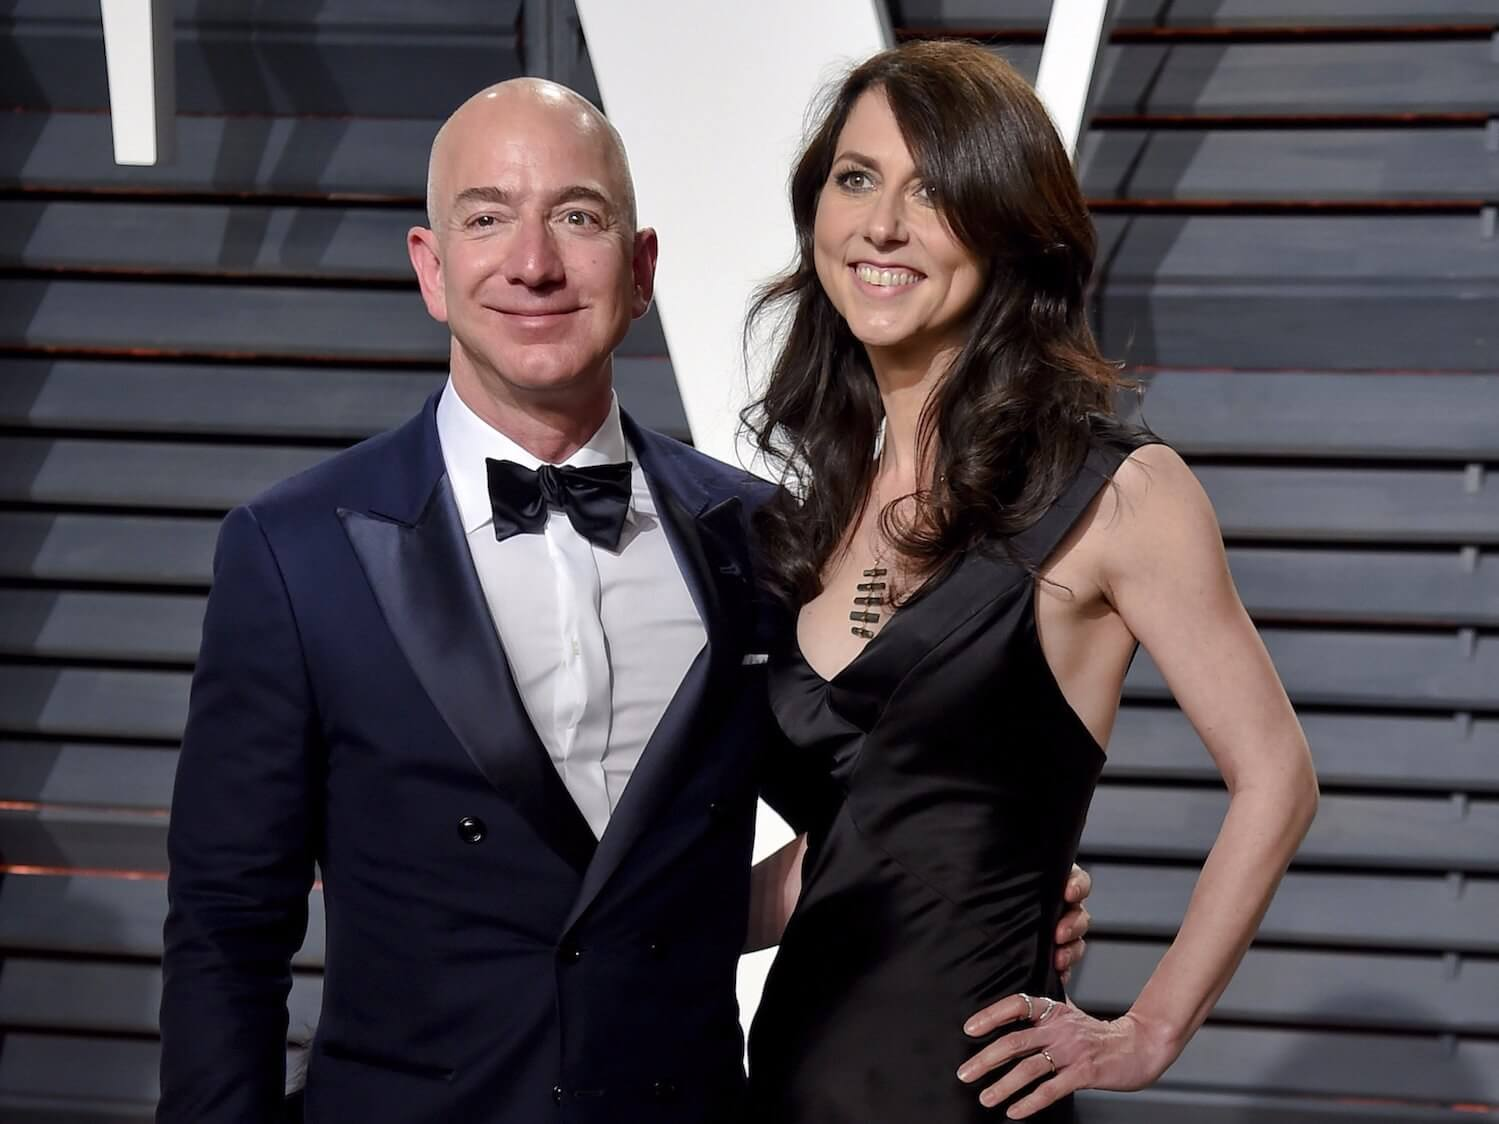 Jeff Bezos Could Hand Half his Amazon Shares to MacKenzie Bezos Following their Divorce